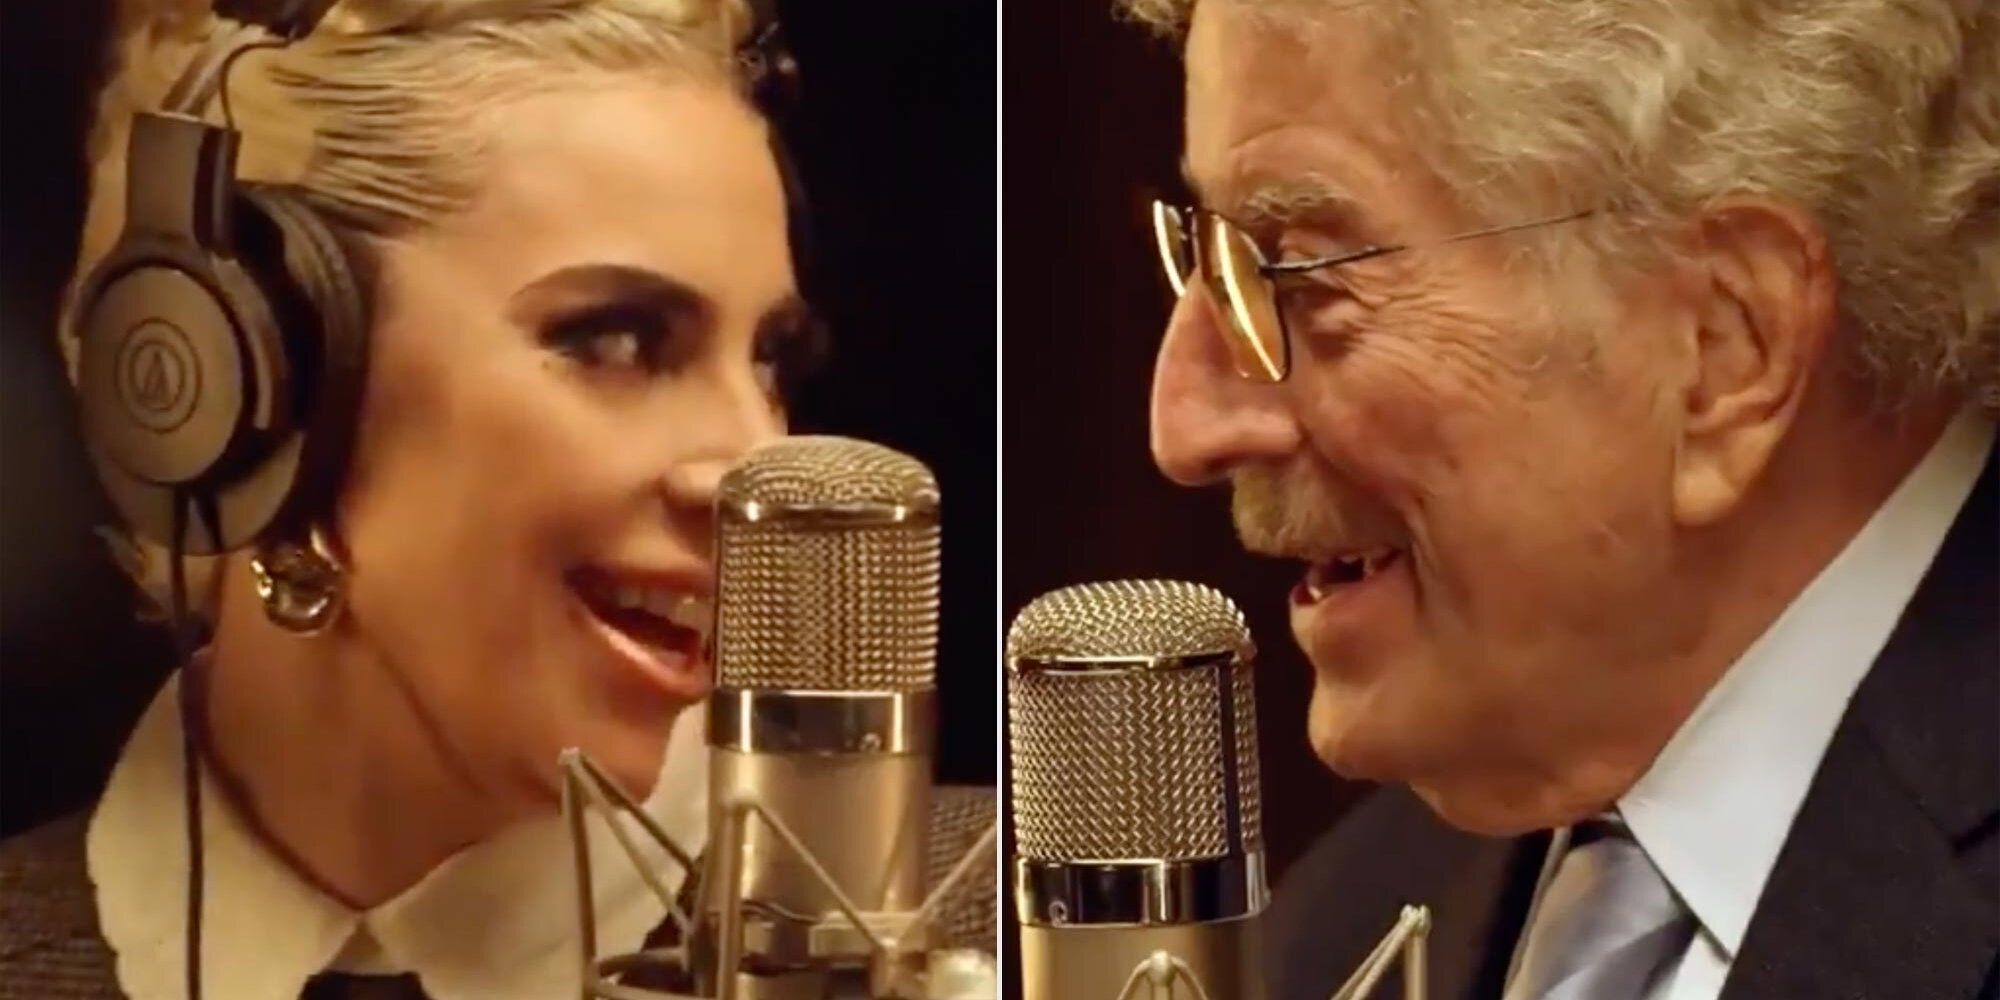 Find Someone Who Looks at You Like Lady Gaga Looks at Tony Bennett in the 'Love for Sale' Music Video.jpg